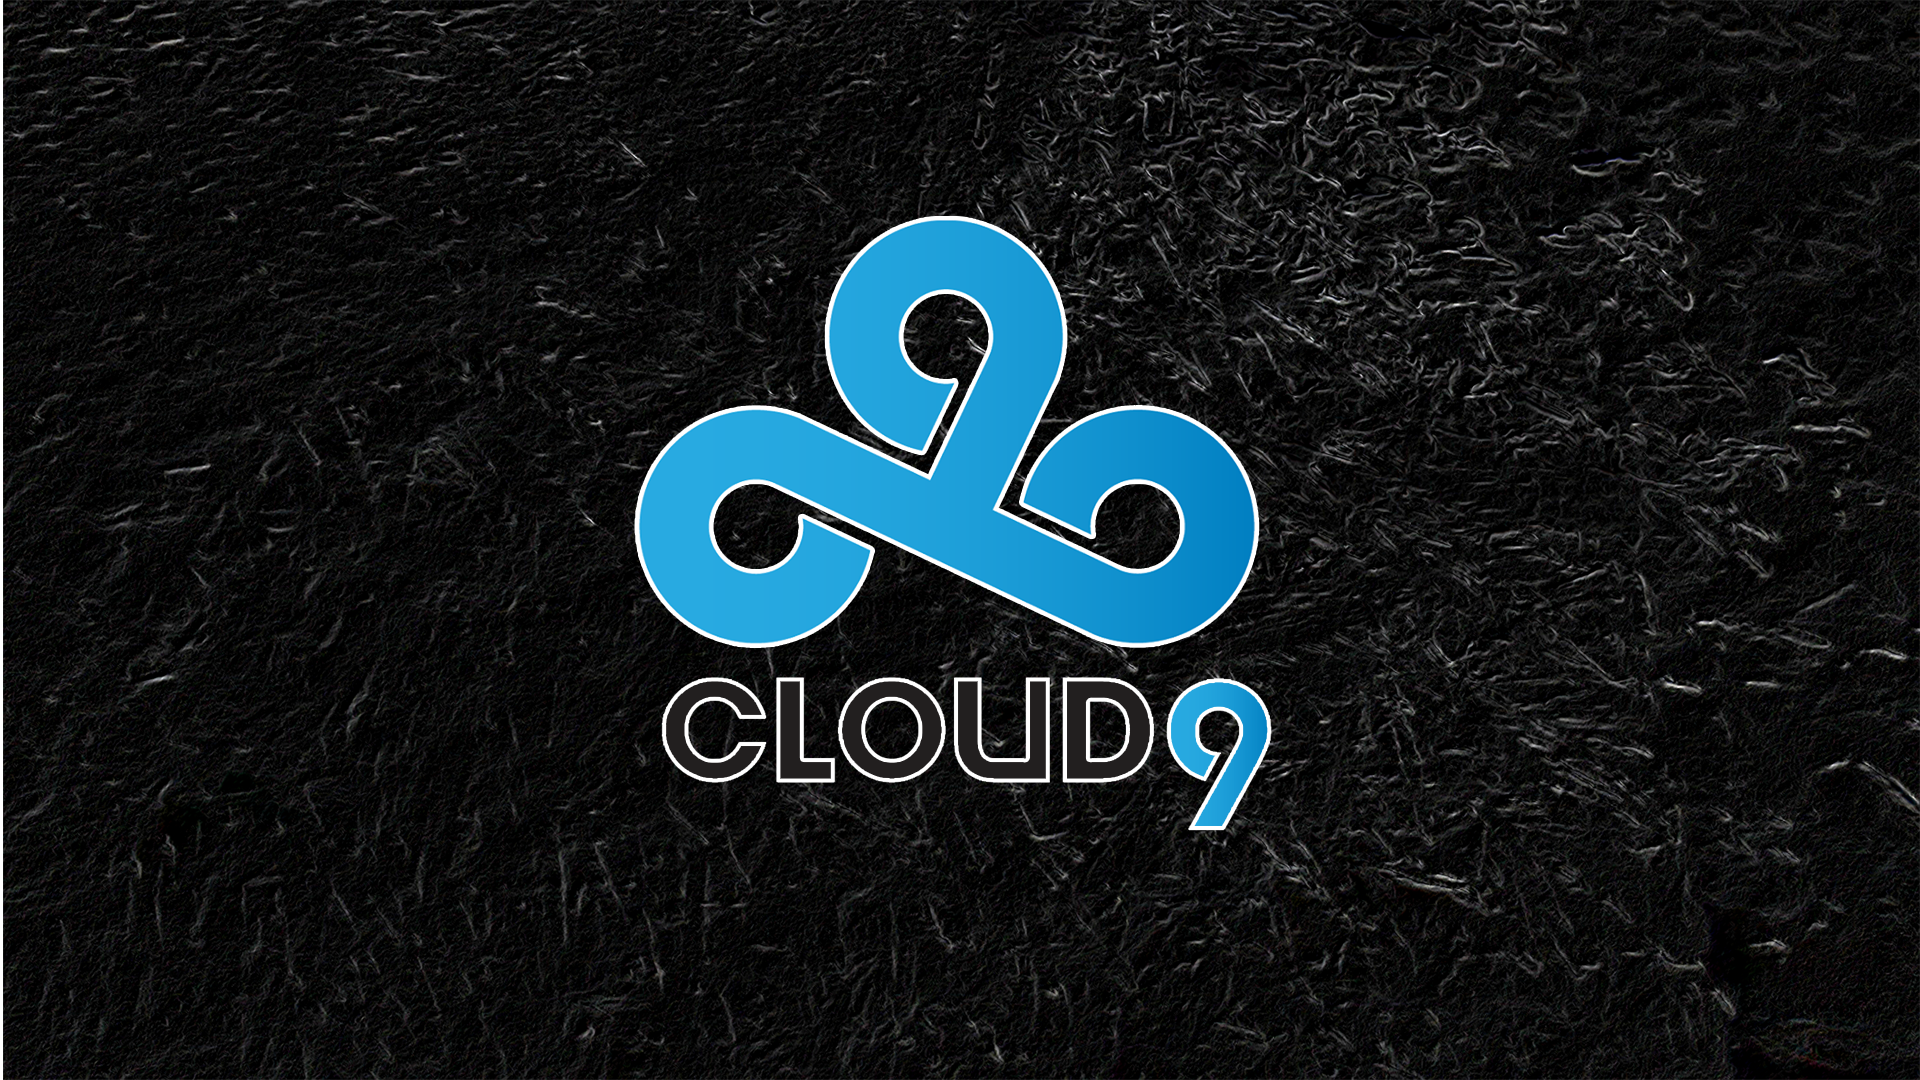 Csgo Hd Wallpapers 72 Images: CSGO HD Wallpapers